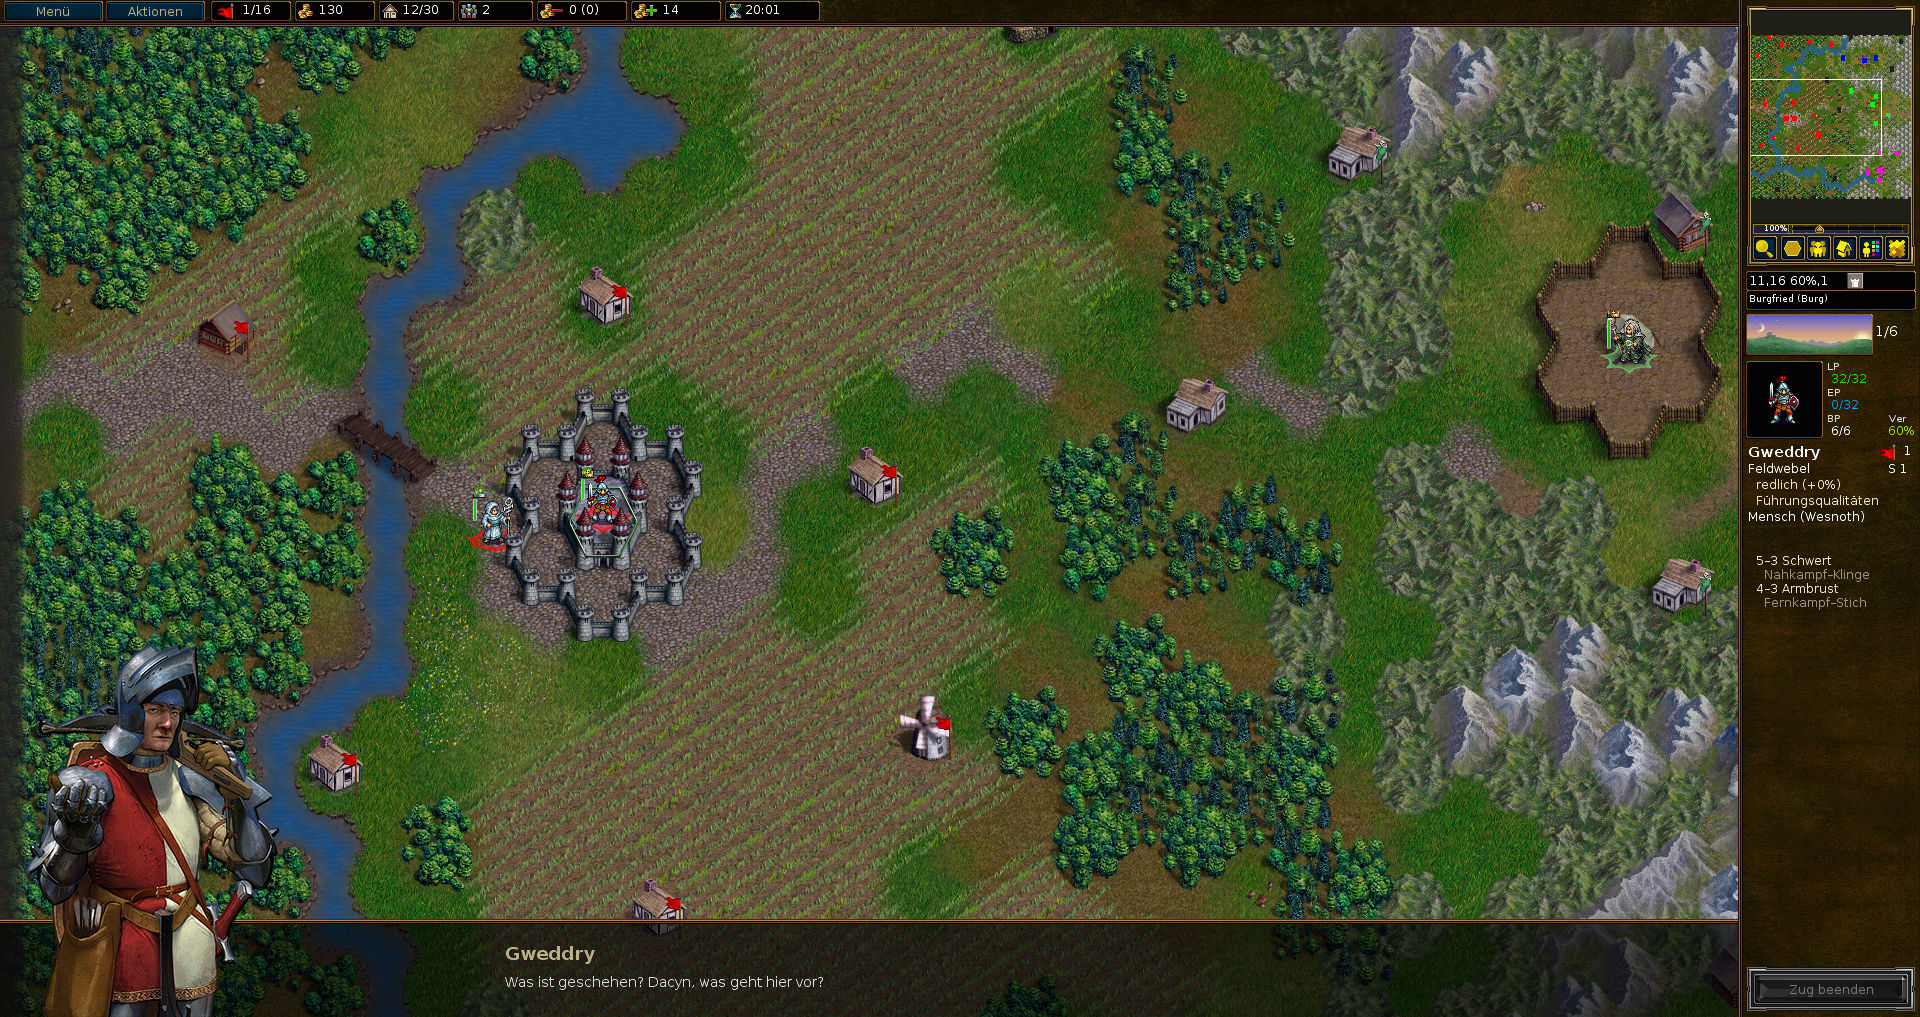 The Battle for Wesnoth gameplay screenshot